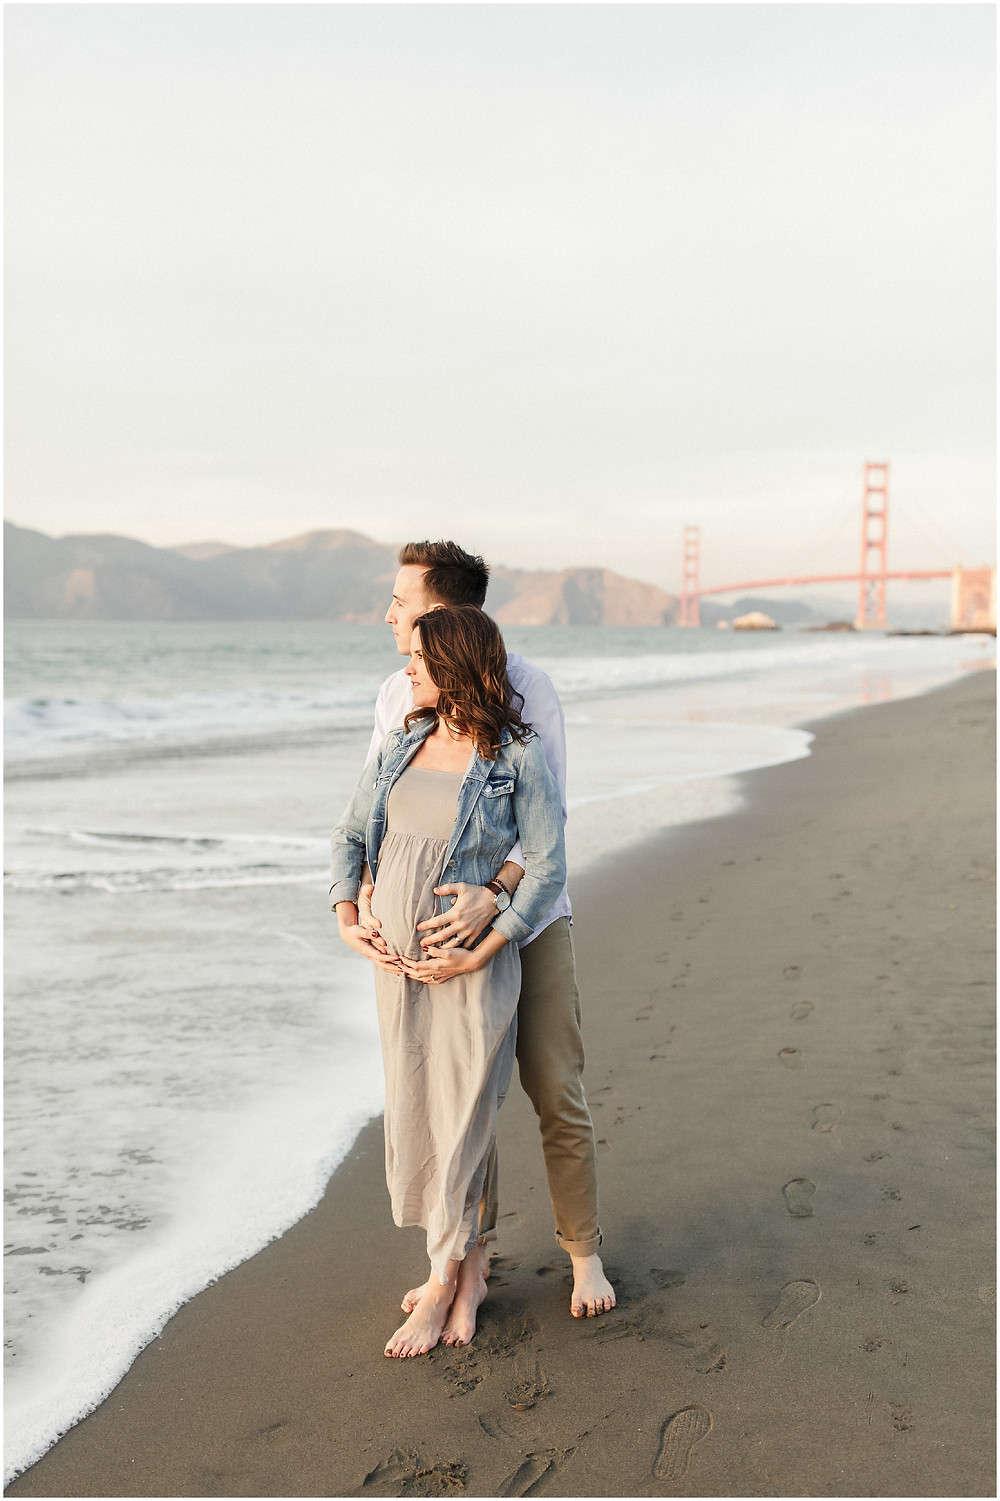 San Francisco maternity session photography at Baker beach by Torrey Fox Photography